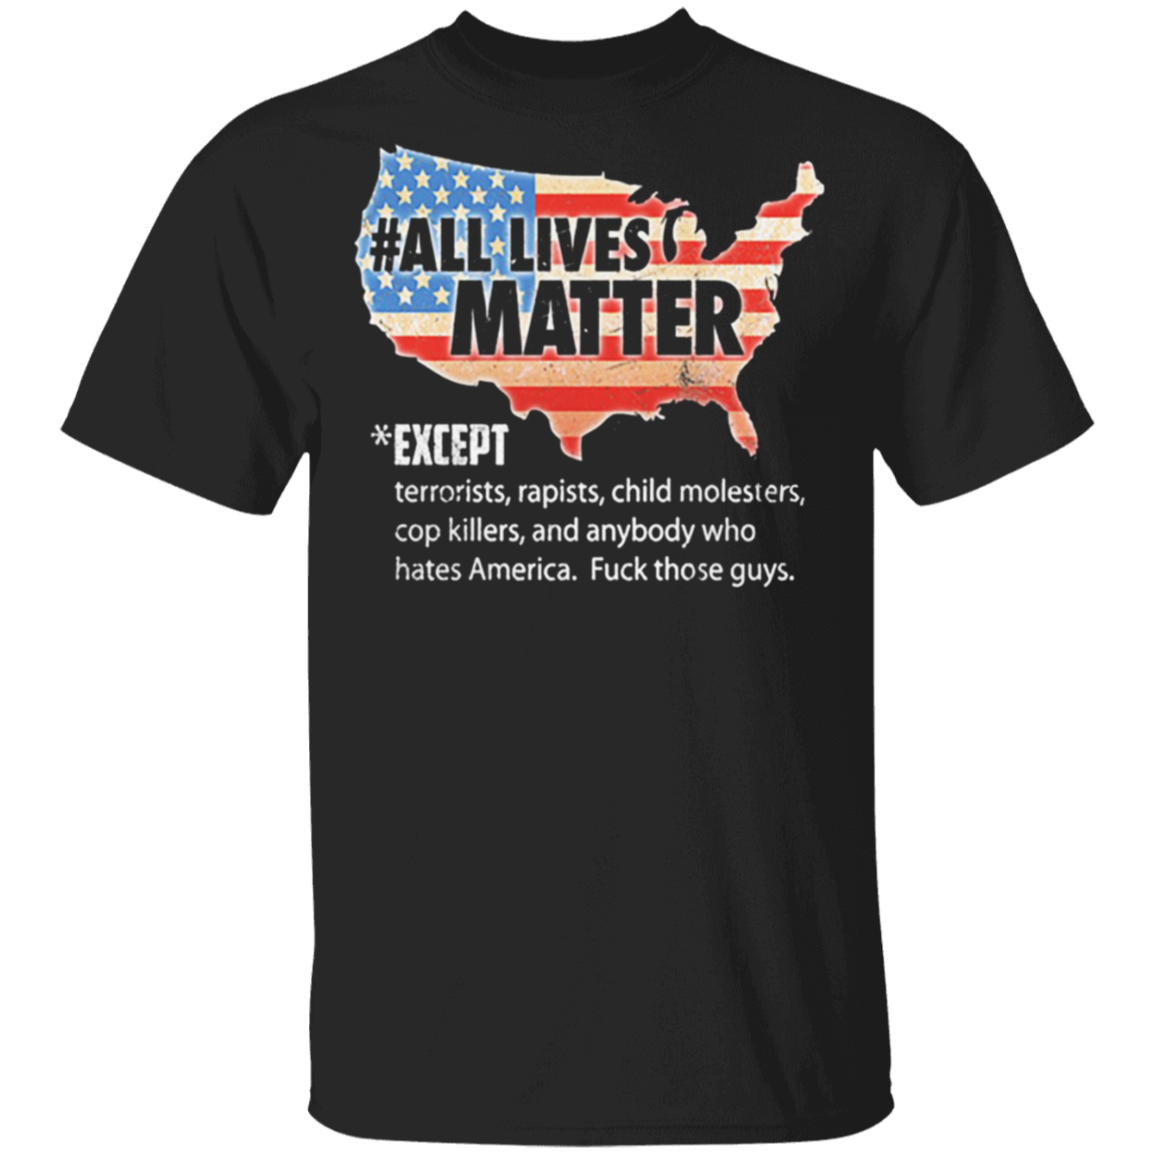 George Floyd All Lives Matter Shirt Cop Killers Fuck The Police T-Shirt